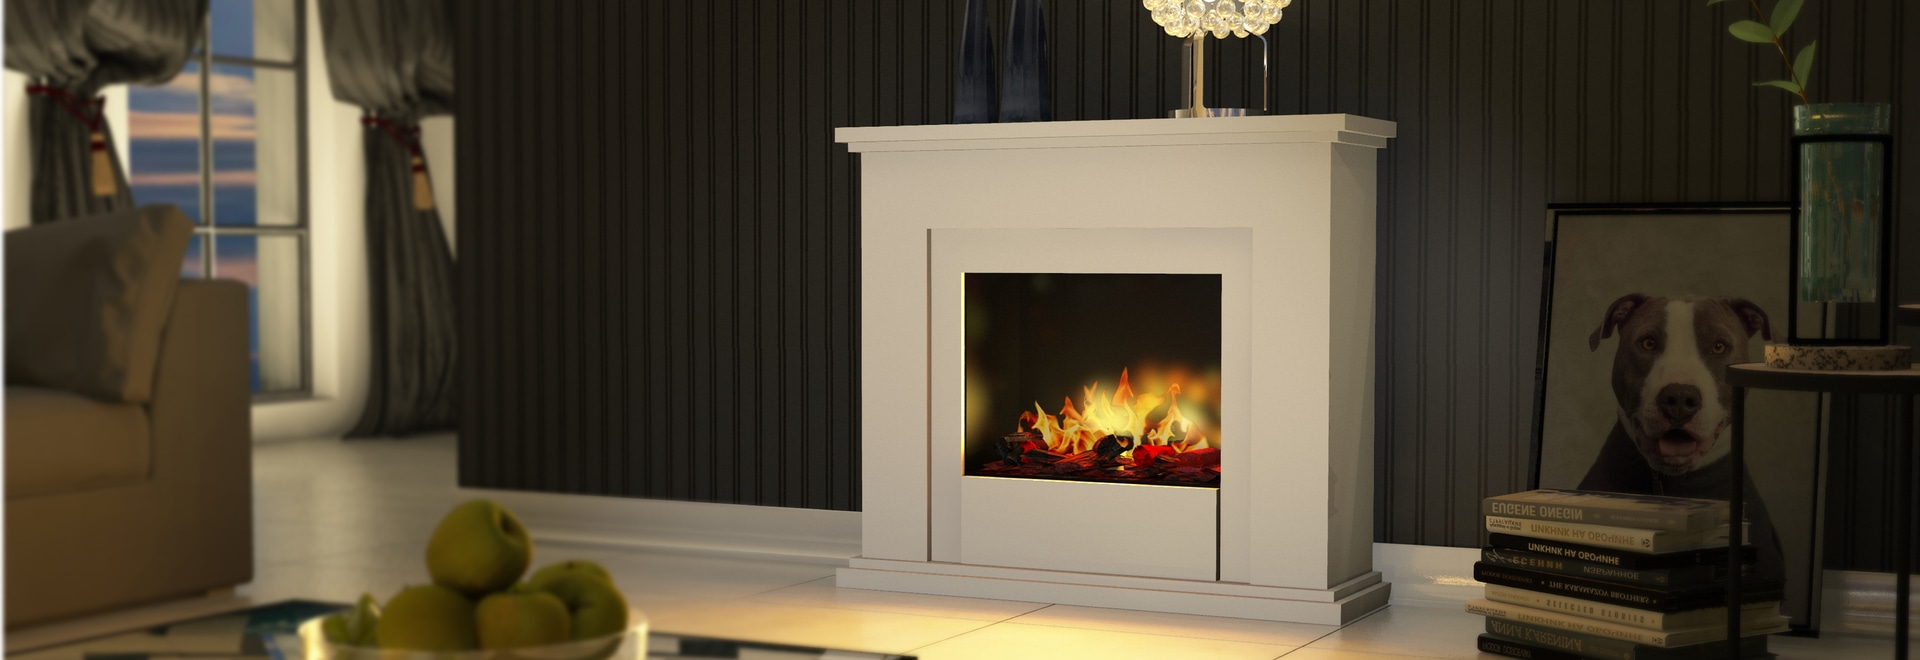 Bergamo Genua Opti Myst Electric Fireplace Rhonstrasse 5 36132 Eiterfeld Germany Muenkel Design